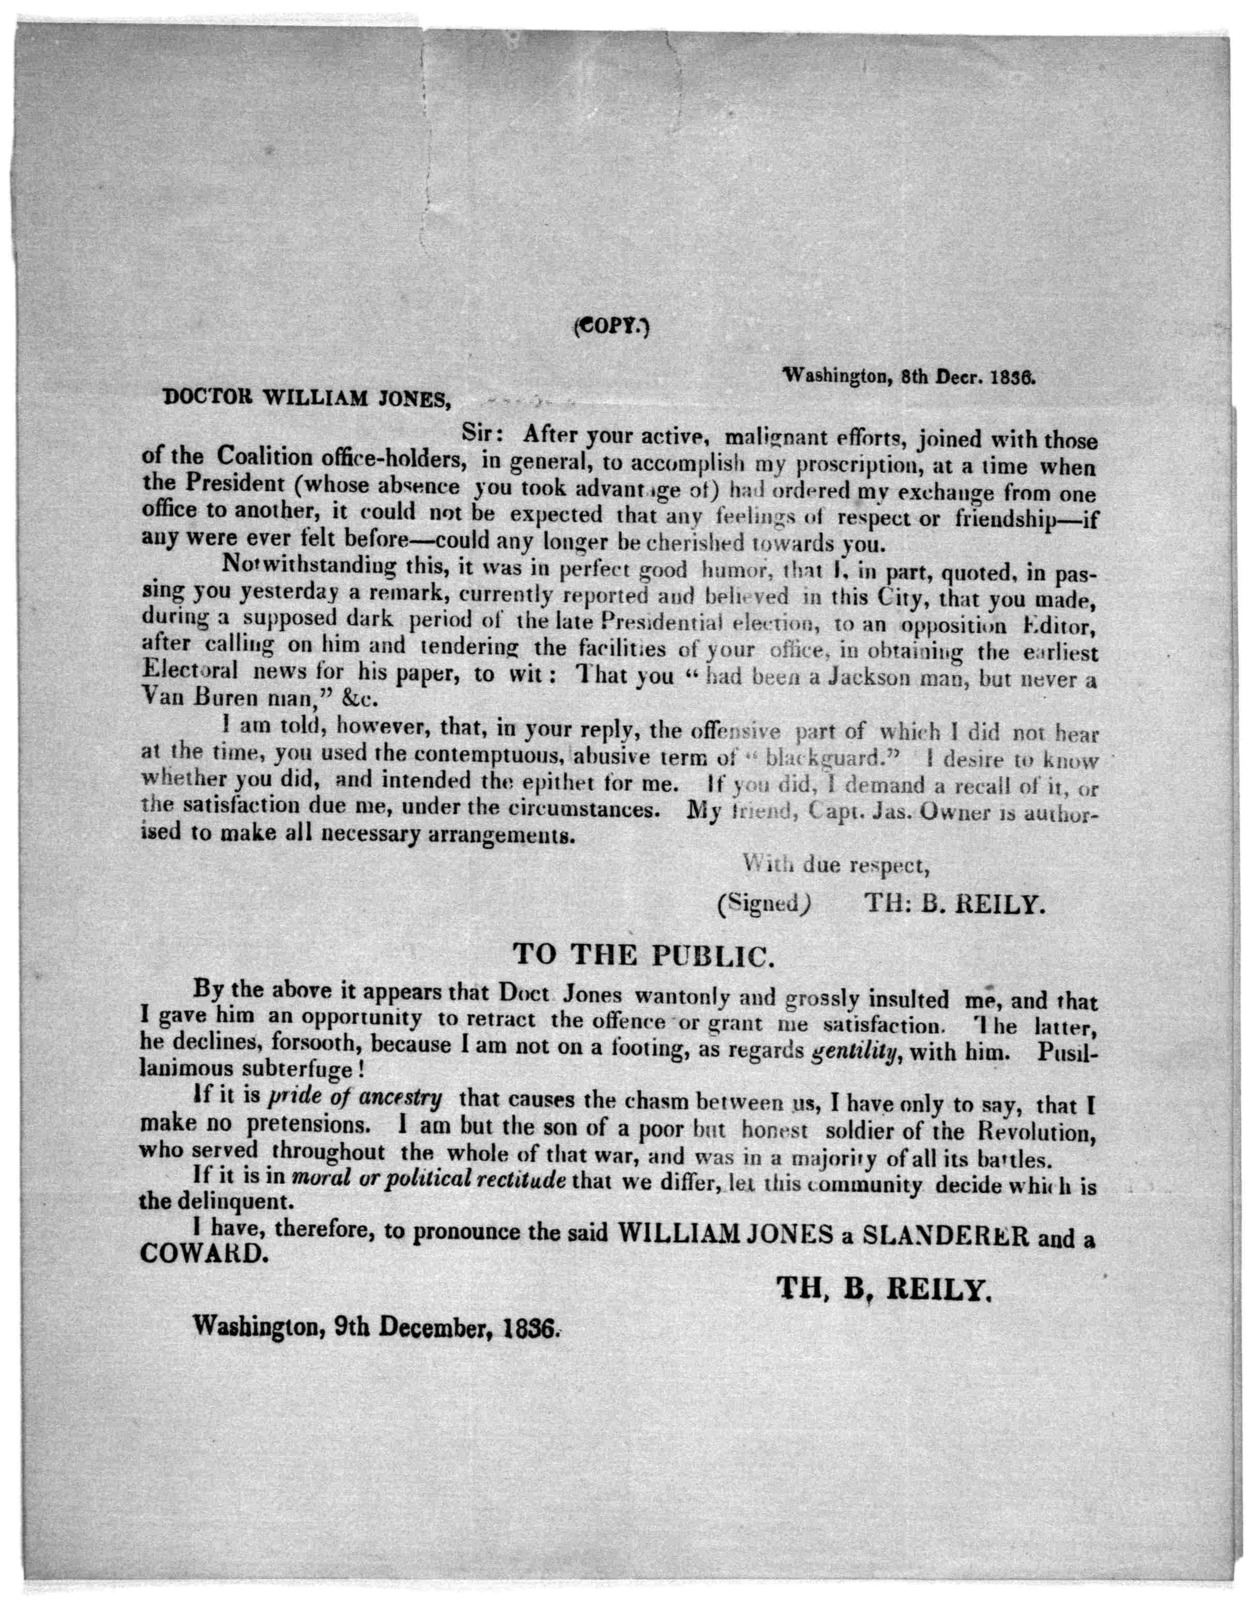 [Copy of a letter from Th. B. Reiley to Doctor William Jones and a notice to the public] Washington 9th, December, 1836.